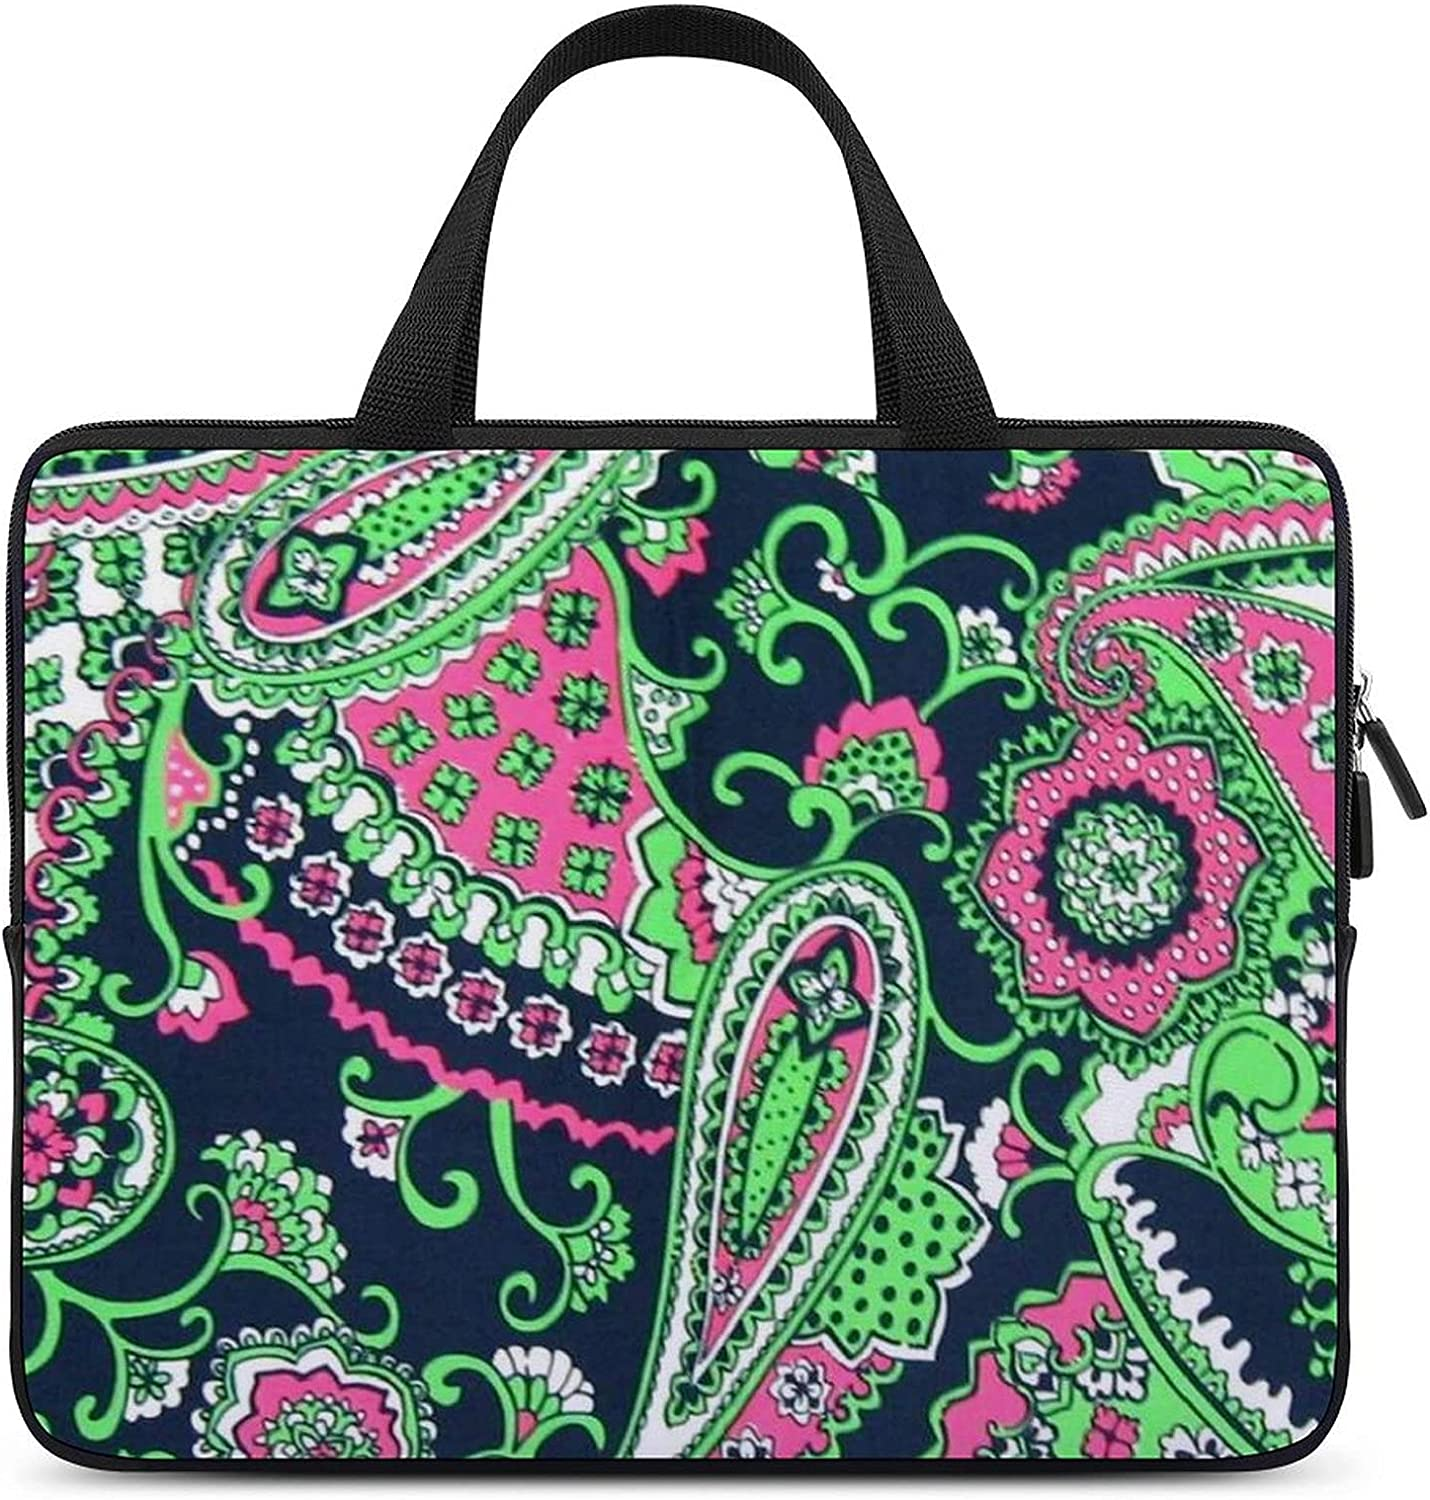 Green Home Laptop Sleeve case Sleeves Suitable for Asus/Dell/Lenovo/HP/Samsung/Sony/Toshiba/Apple 10inch